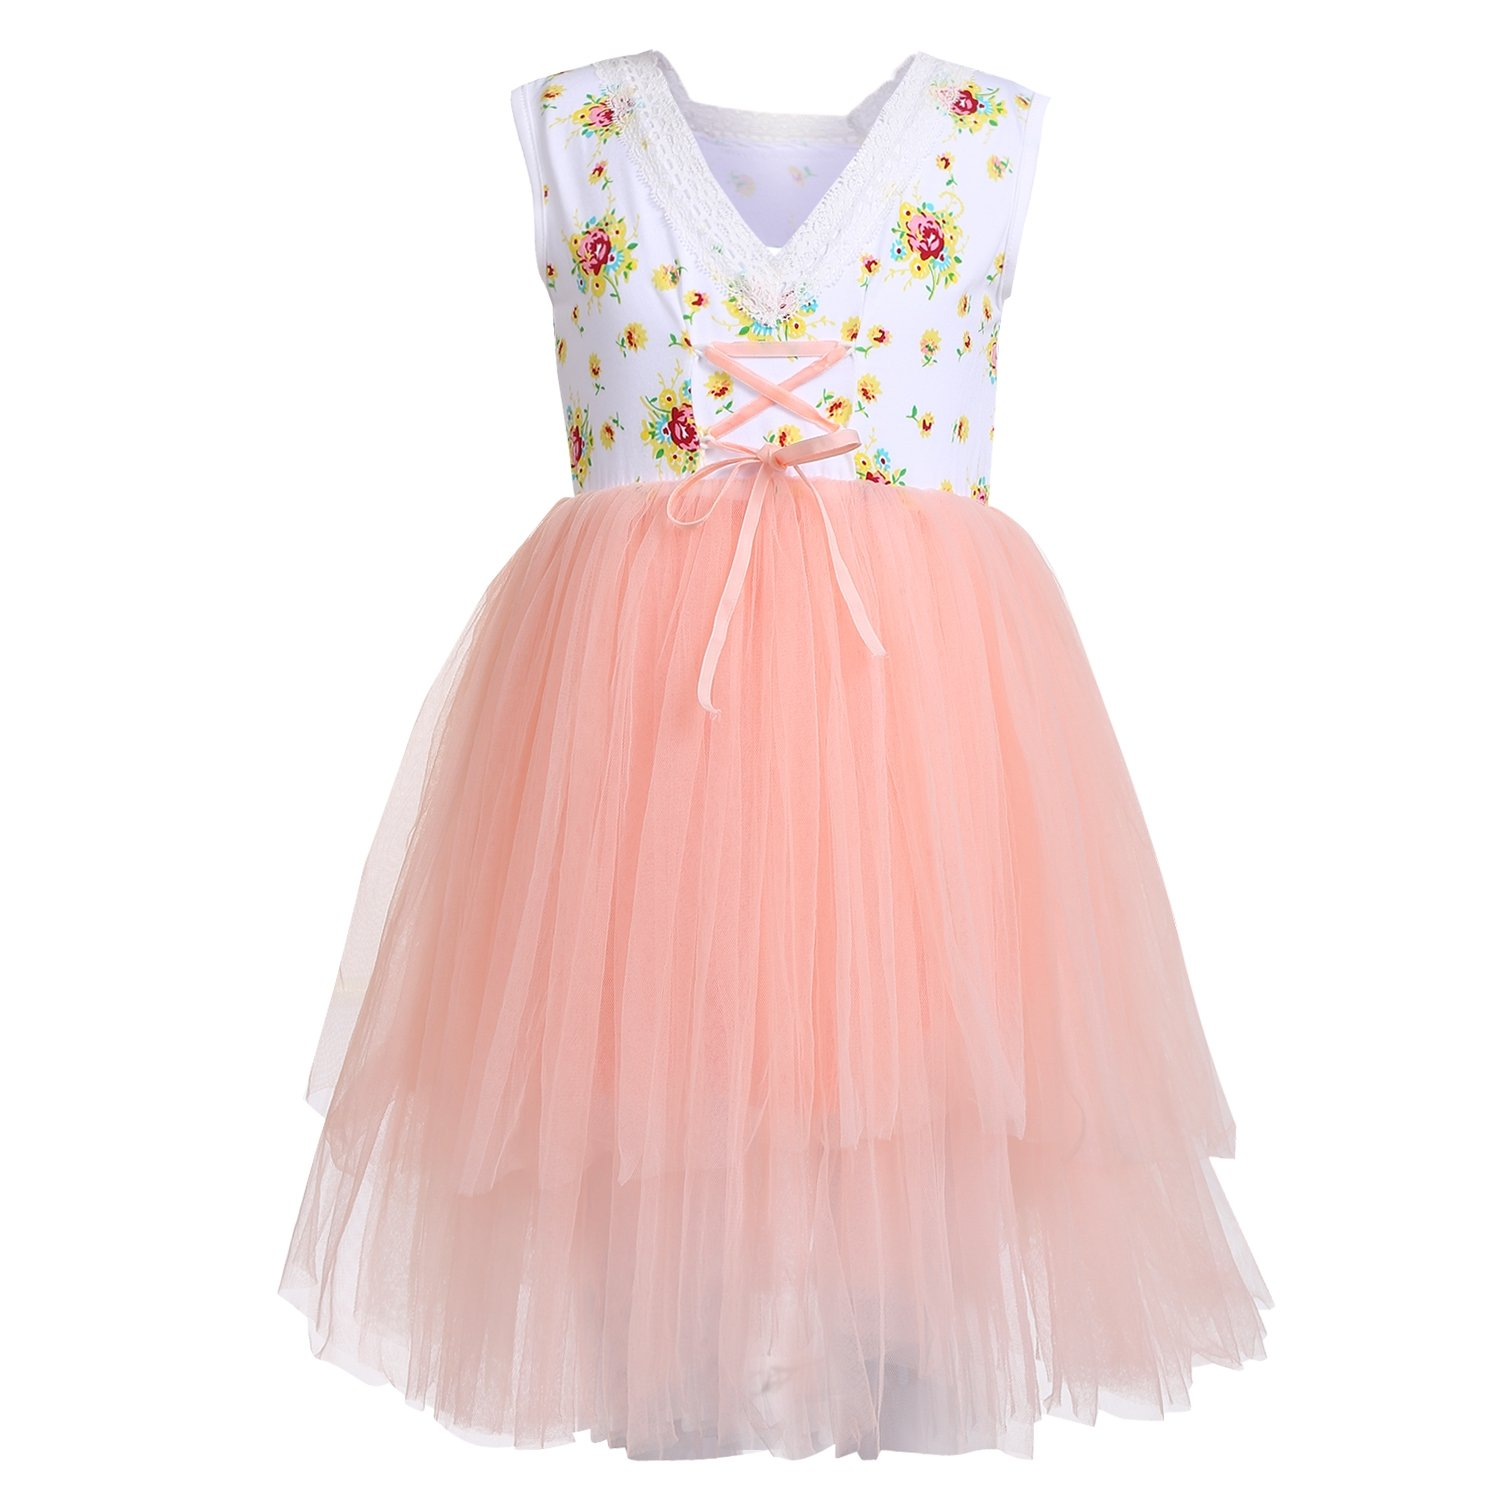 Arshiner Little Girls Sleeveless Tutu Party Princess Dress,Pink,130(Age for 8-9Y)